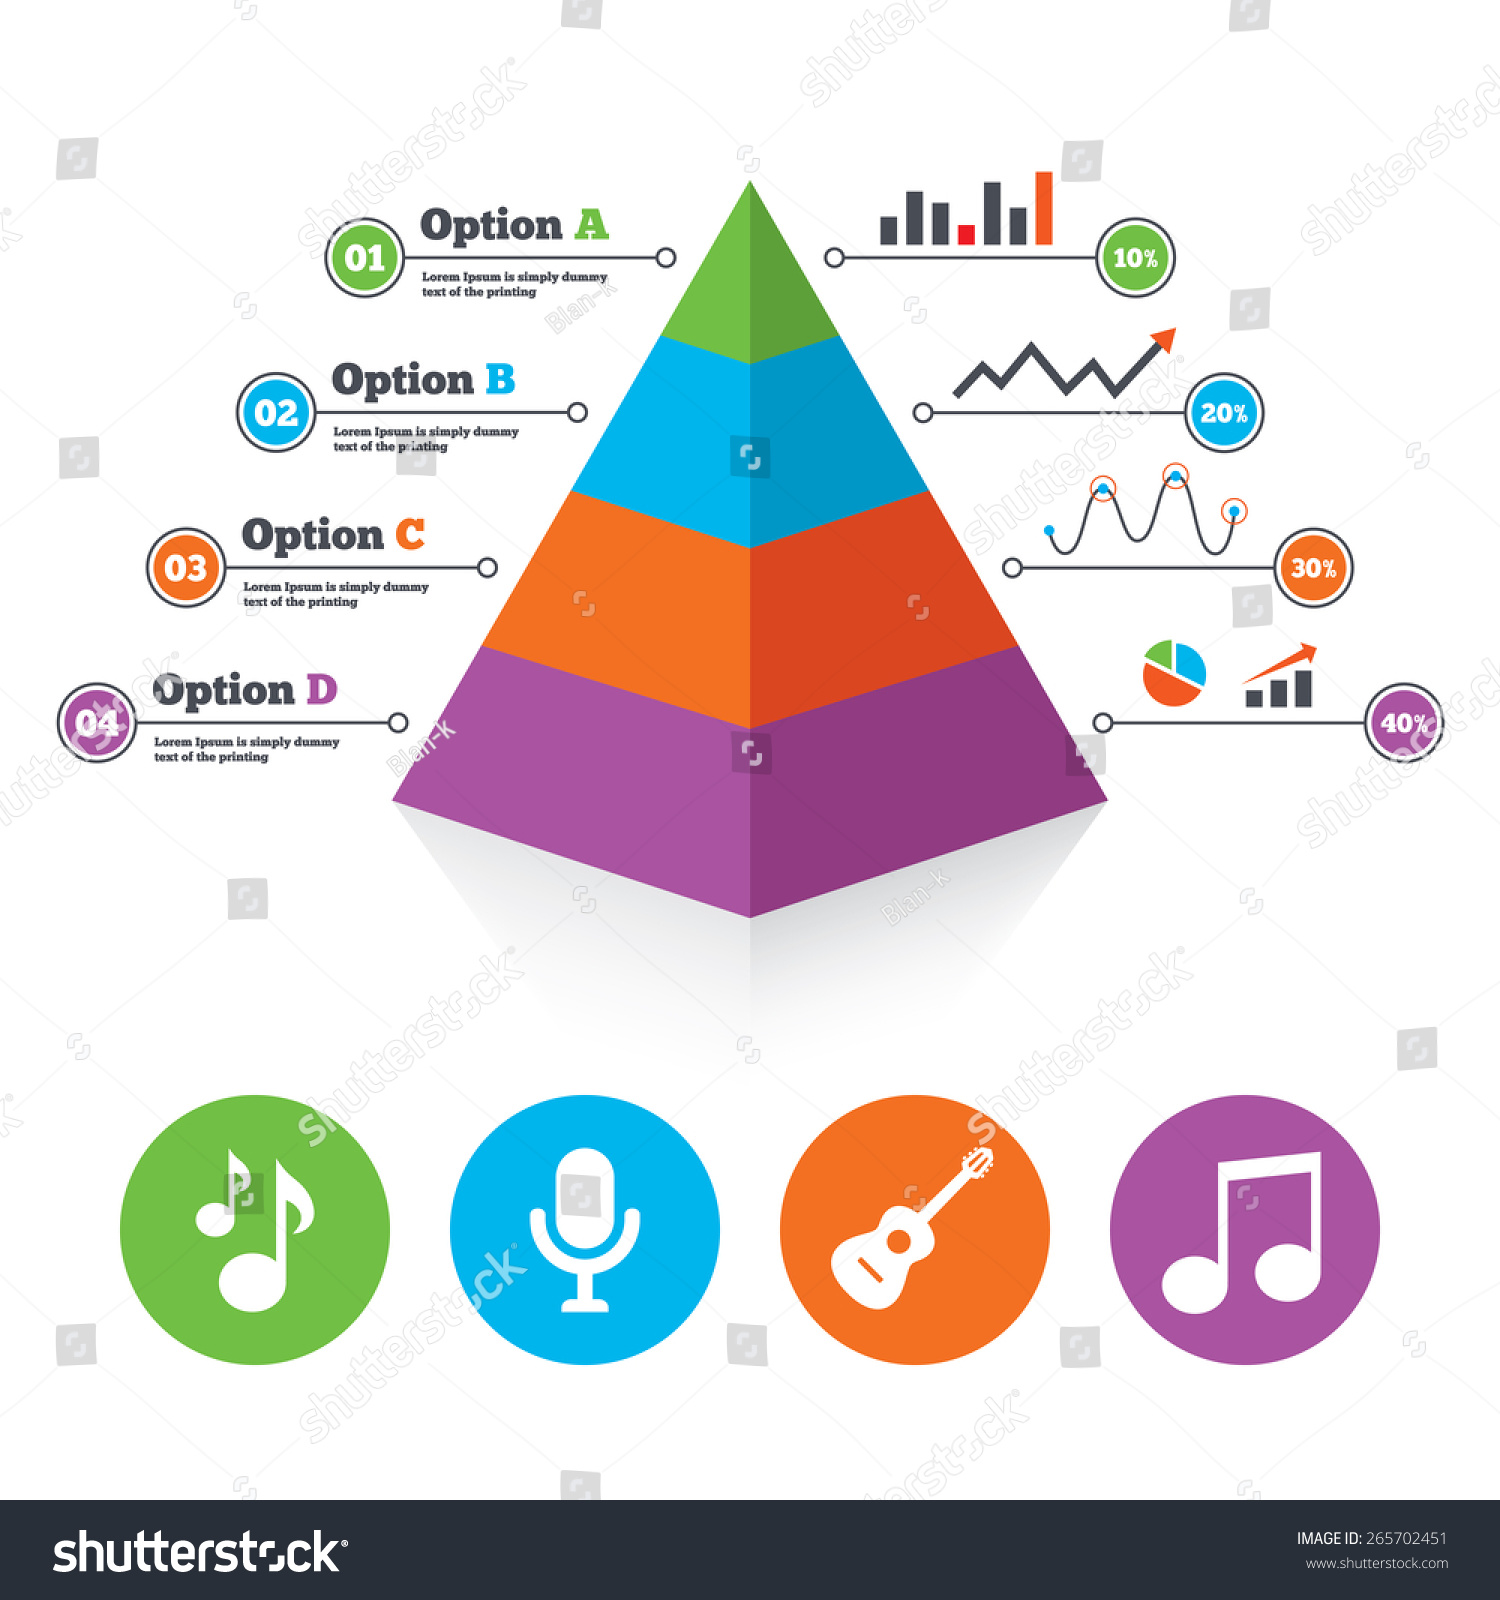 hight resolution of pyramid chart template music icons microphone karaoke symbol music notes and acoustic guitar signs infographic progress diagram vector vector